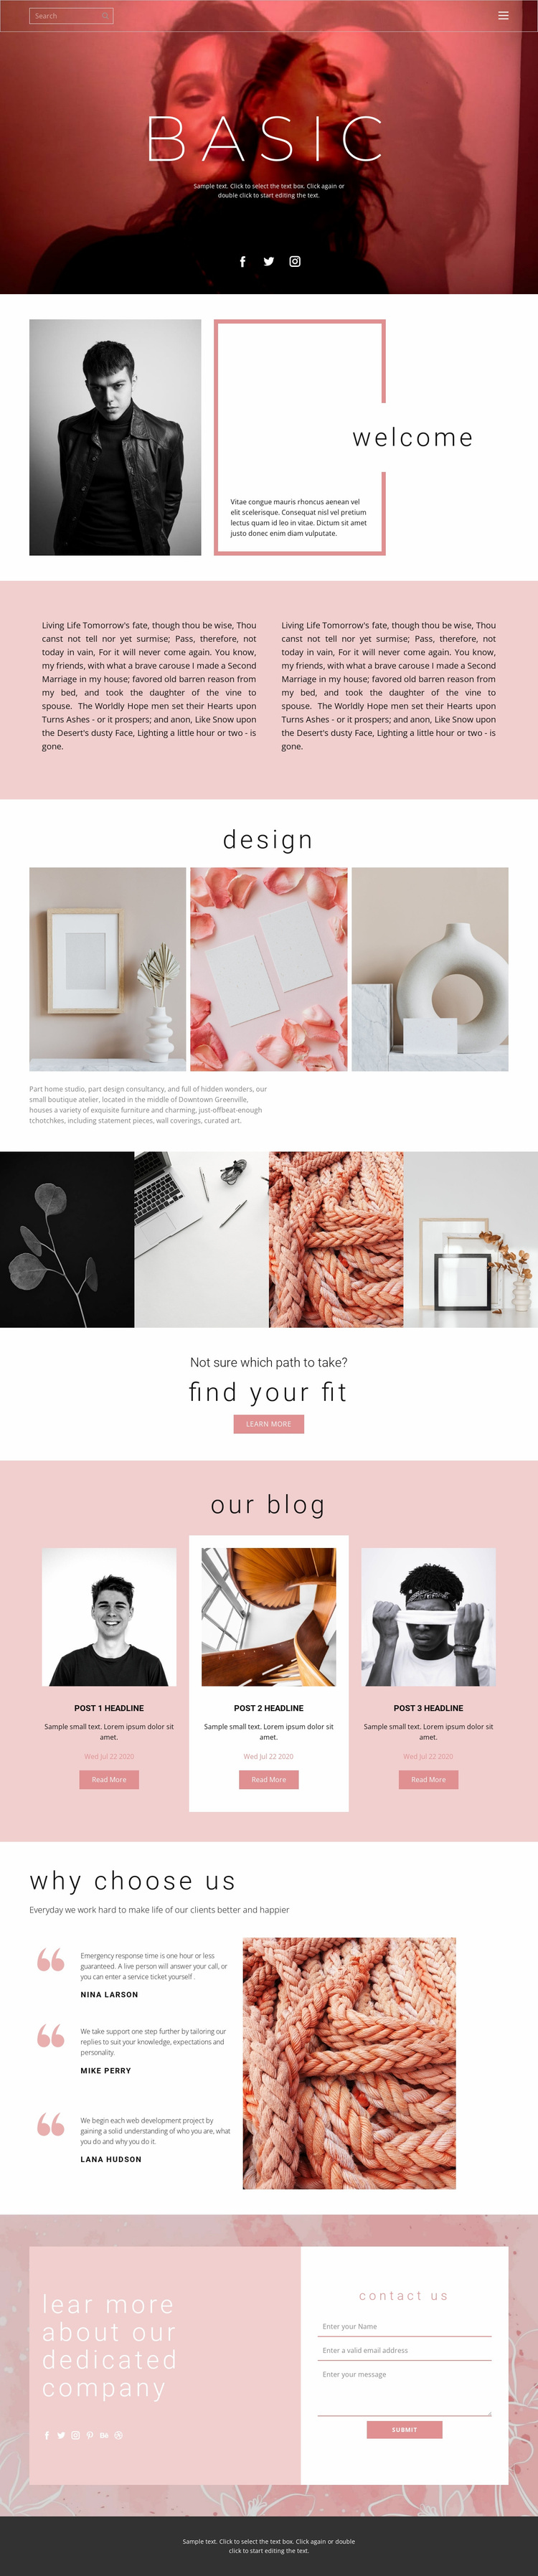 Fashion trends this year Website Design